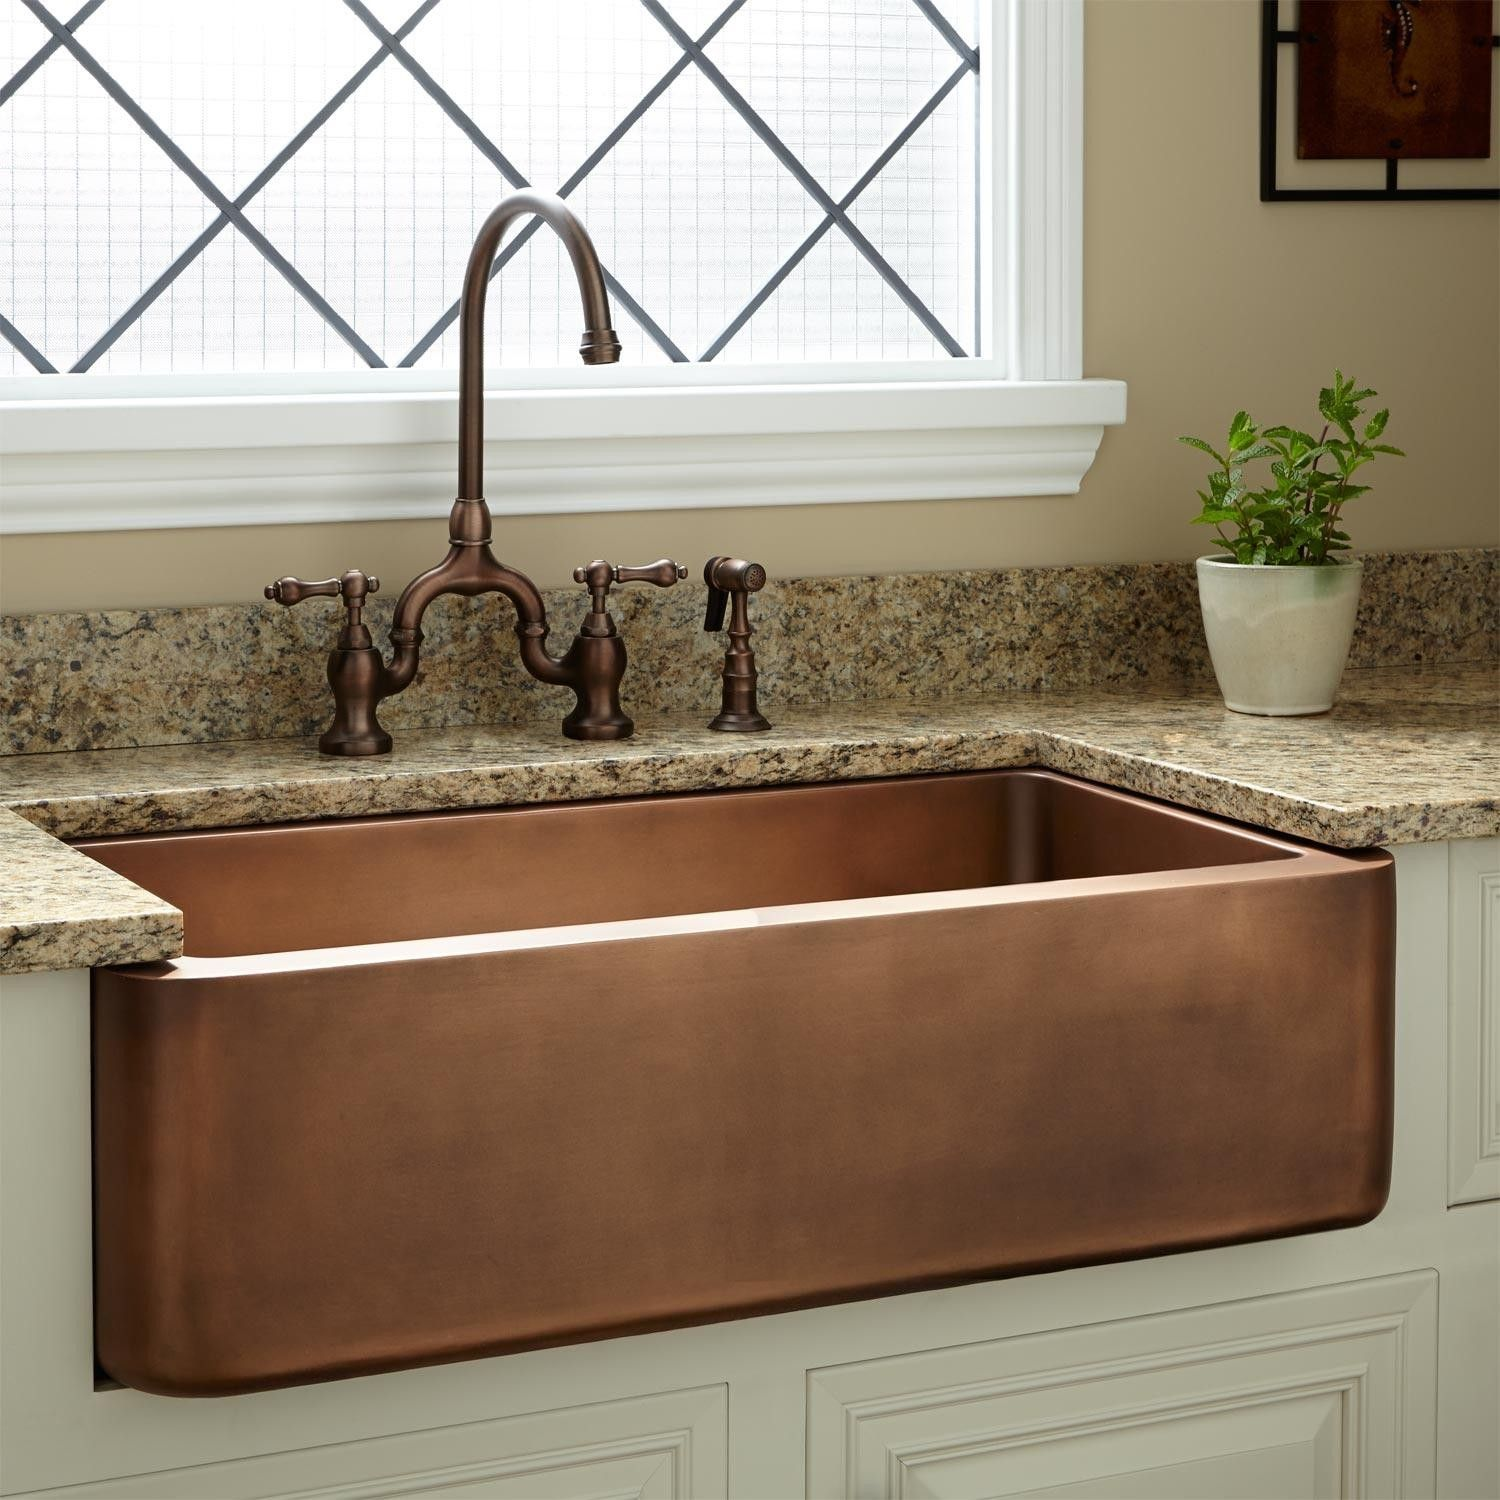 34 Mira Reversible Copper Farmhouse Sink Smooth Interior Copper Farmhouse Sinks Farmhouse Sink Kitchen Sink